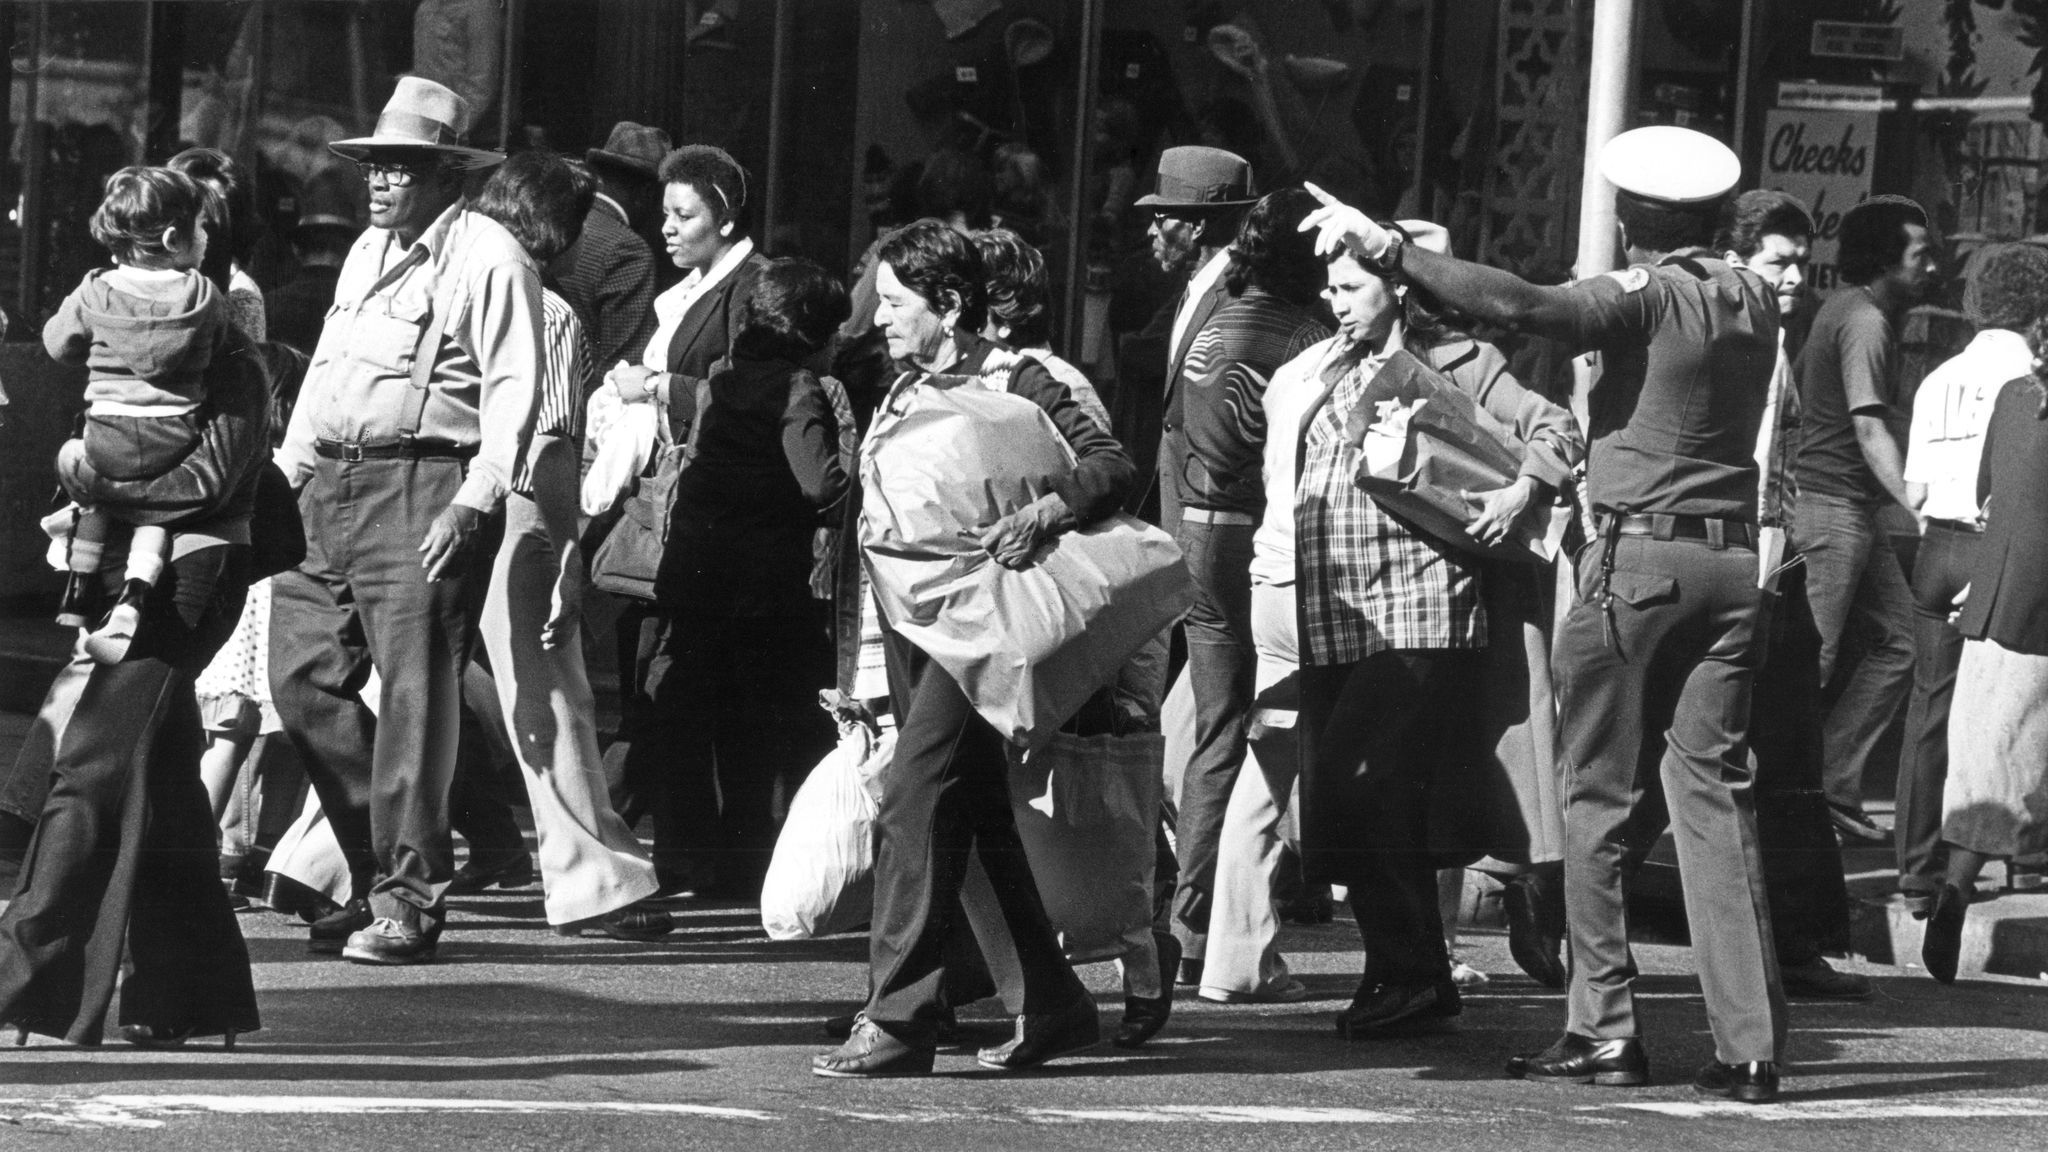 Shoppers fill a sidewalk in downtown Los Angeles in 1980.